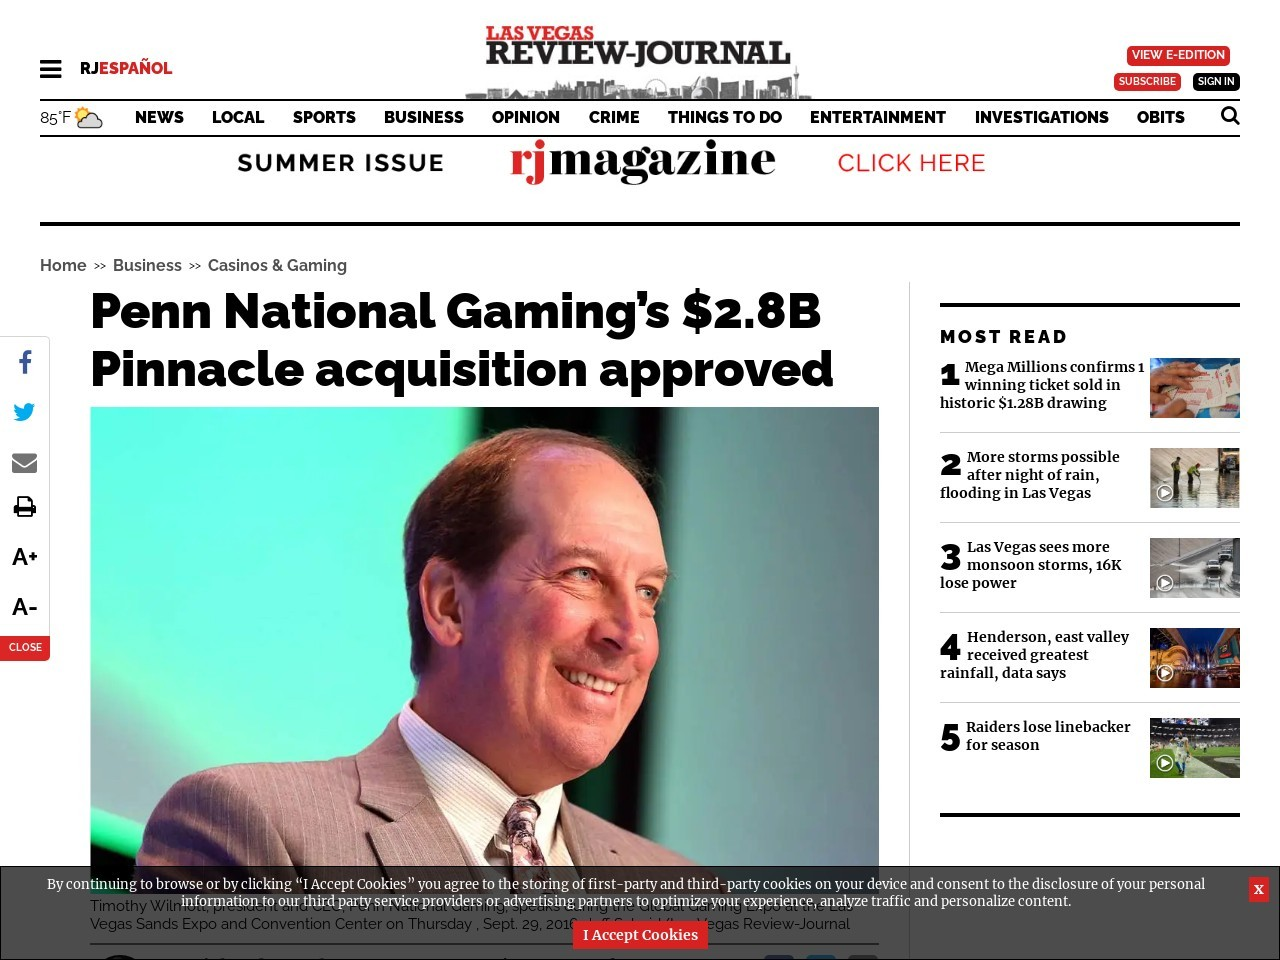 Penn National Gaming's $2.8B Pinnacle acquisition approved